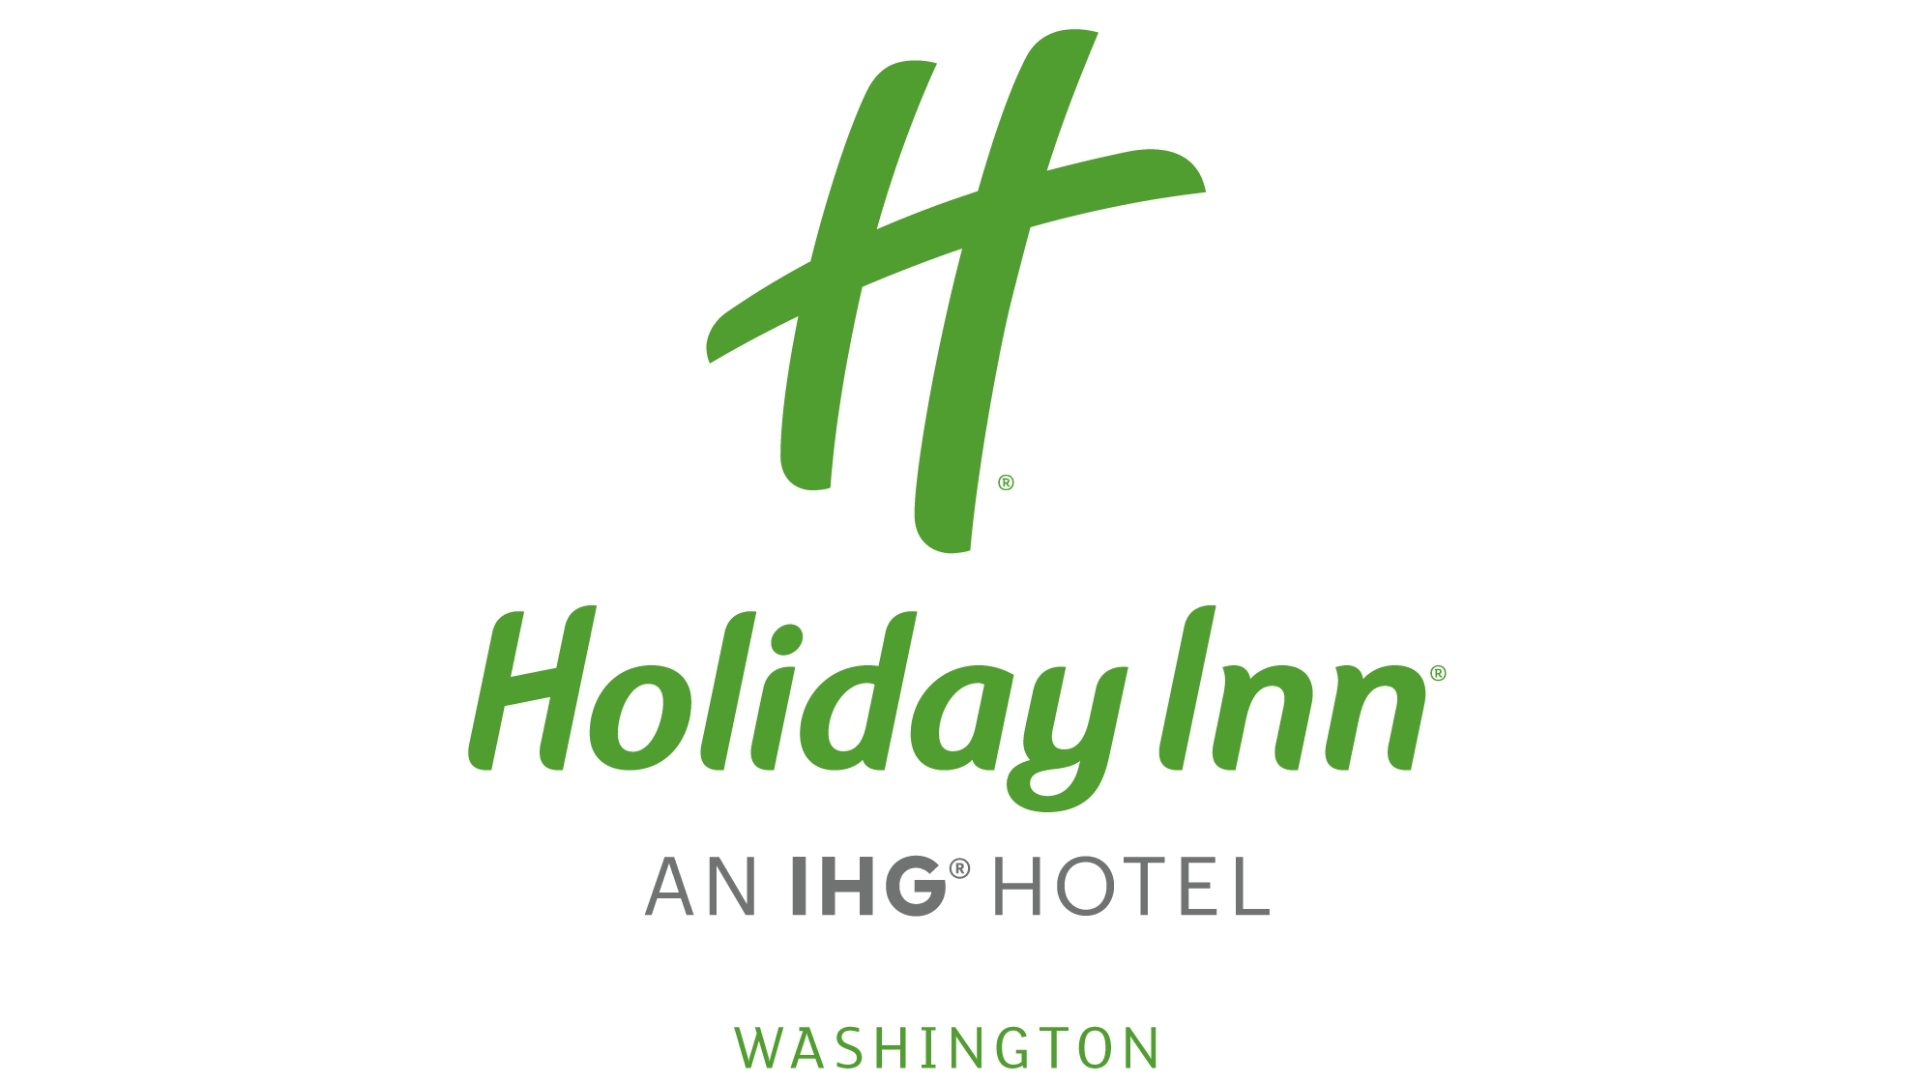 Holiday Inn - Washington logo